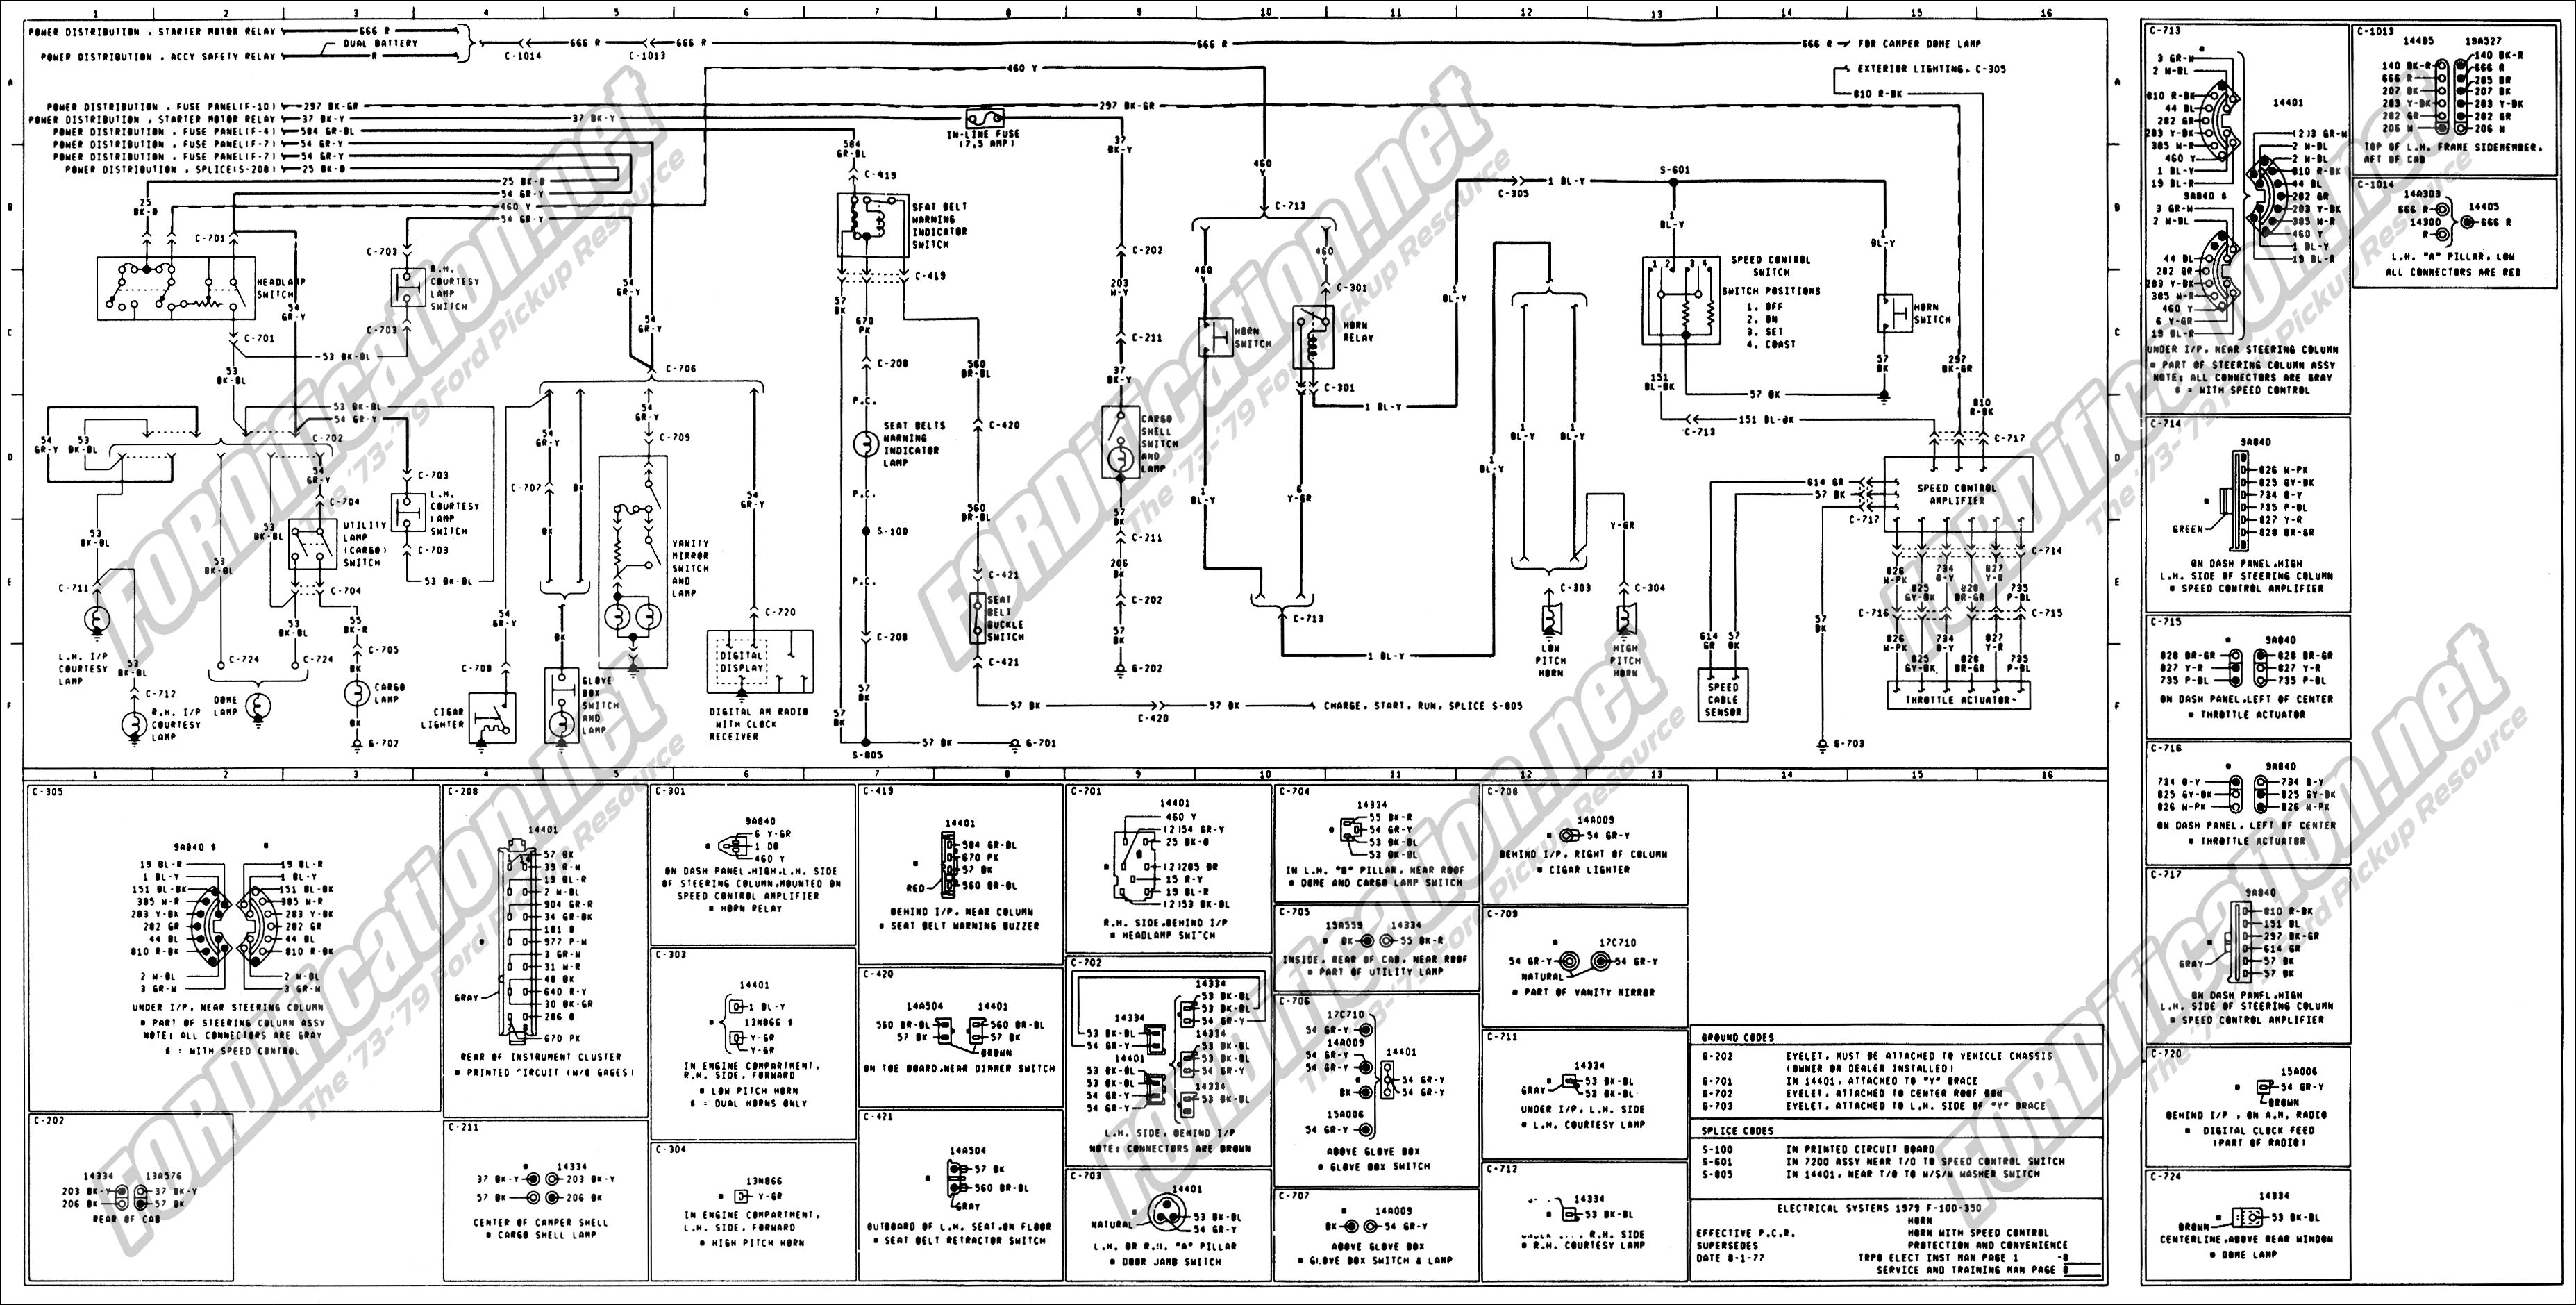 wiring_79master_8of9 2008 f250 stereo wiring harness wiring diagram simonand ford f250 wiring diagram at n-0.co